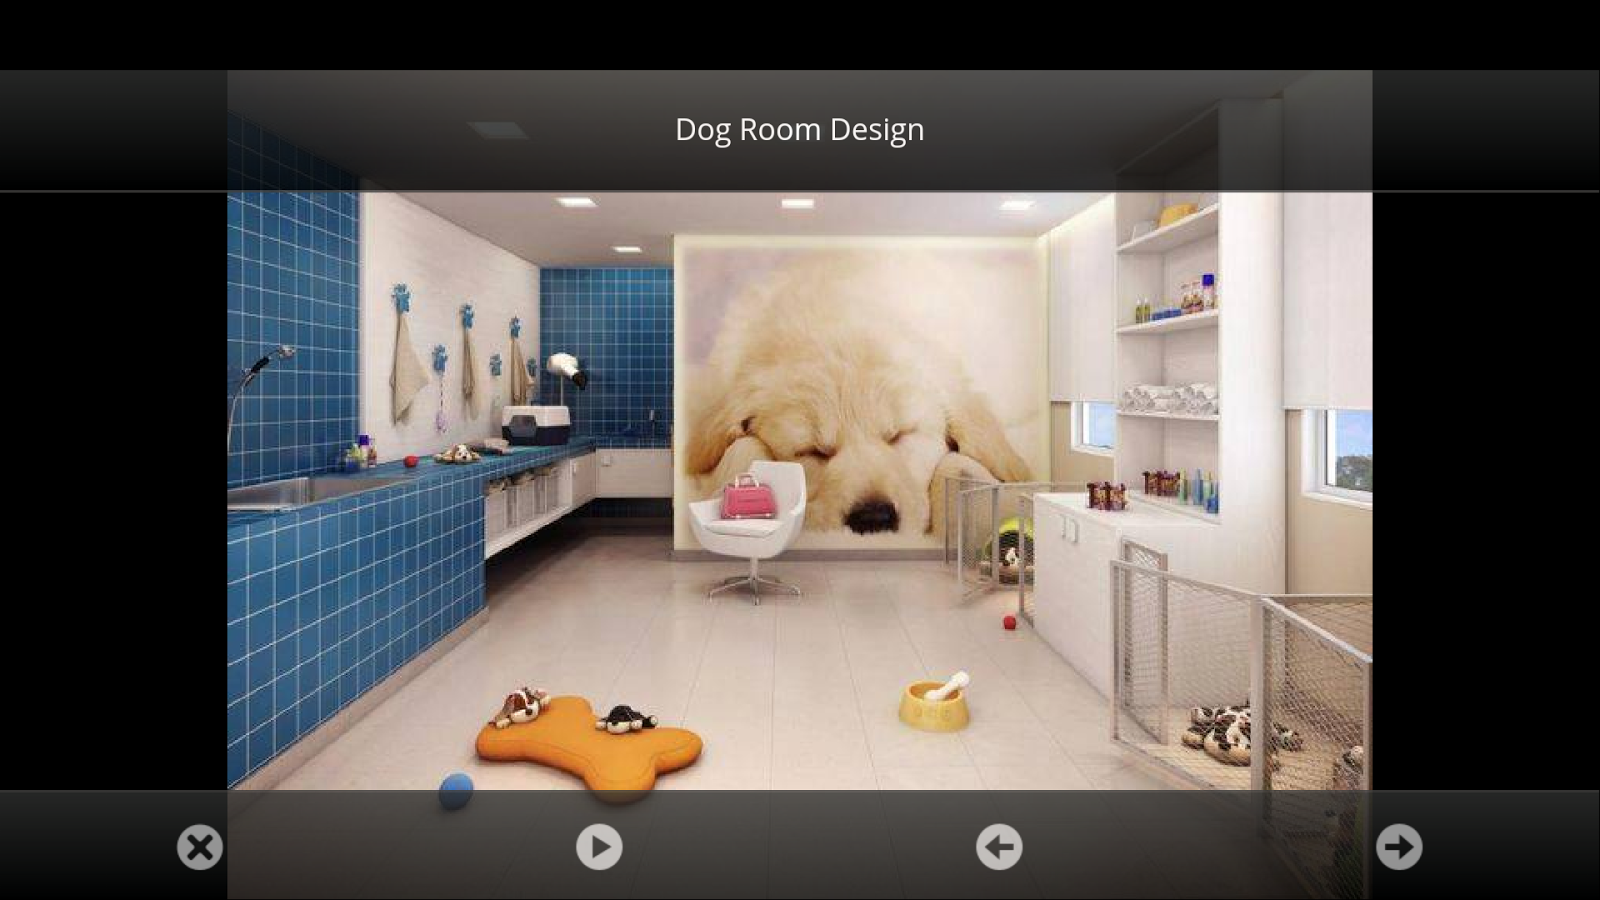 Dog Room Ideas - Android Apps on Google Play